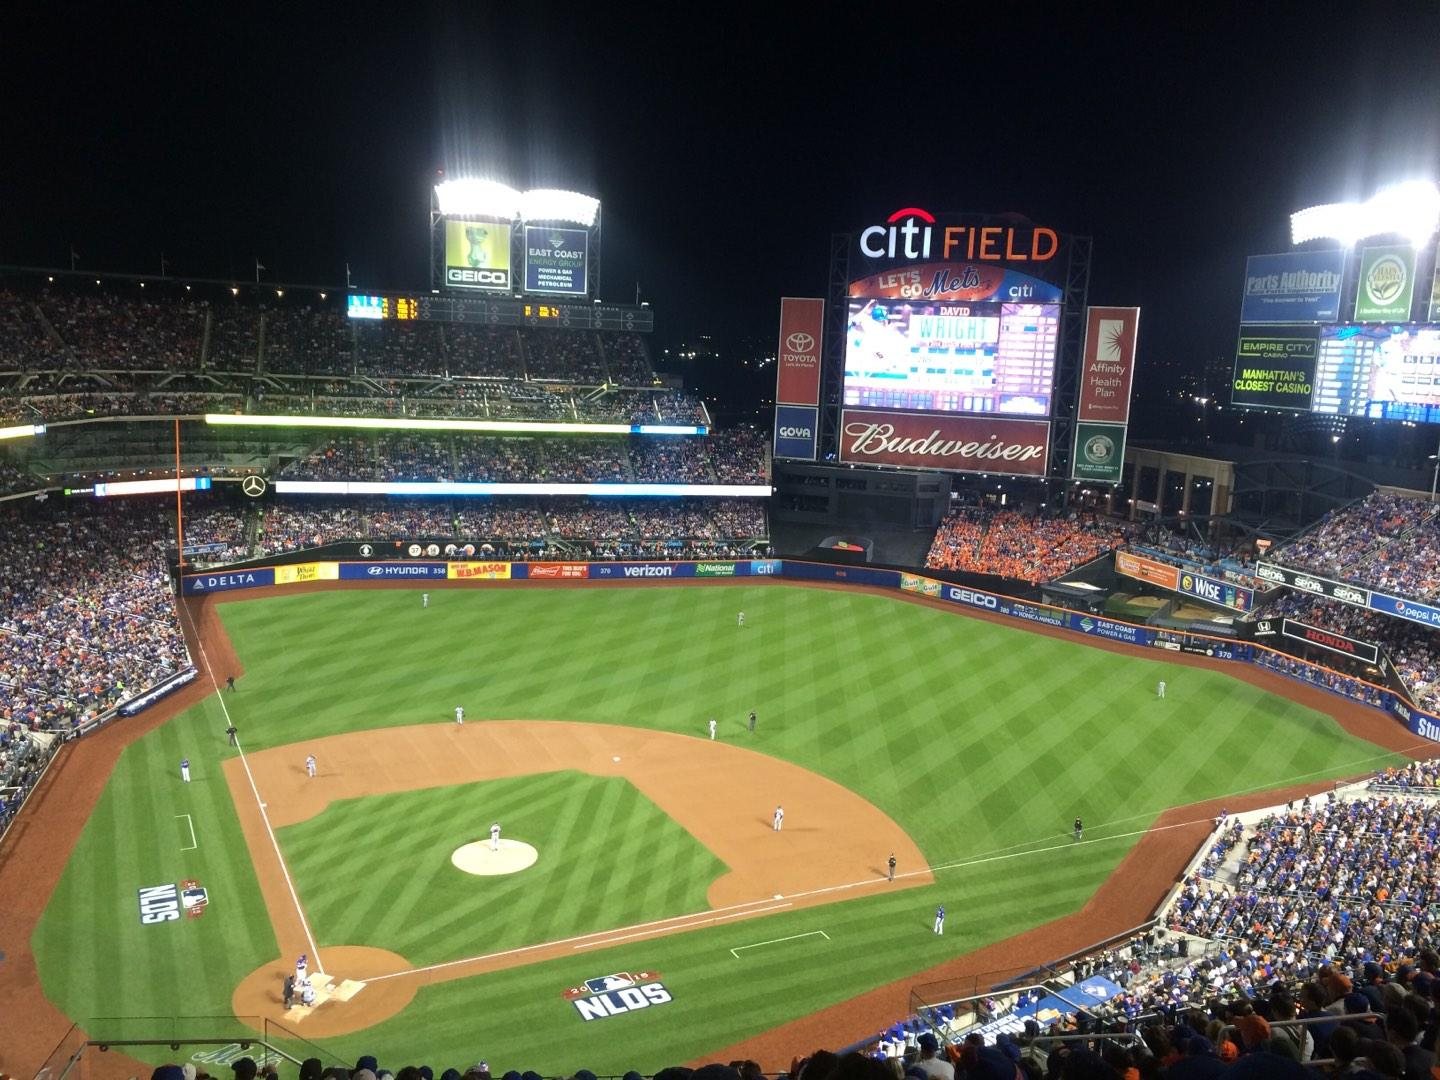 Citi Field Section 510 Row 14 Seat 8